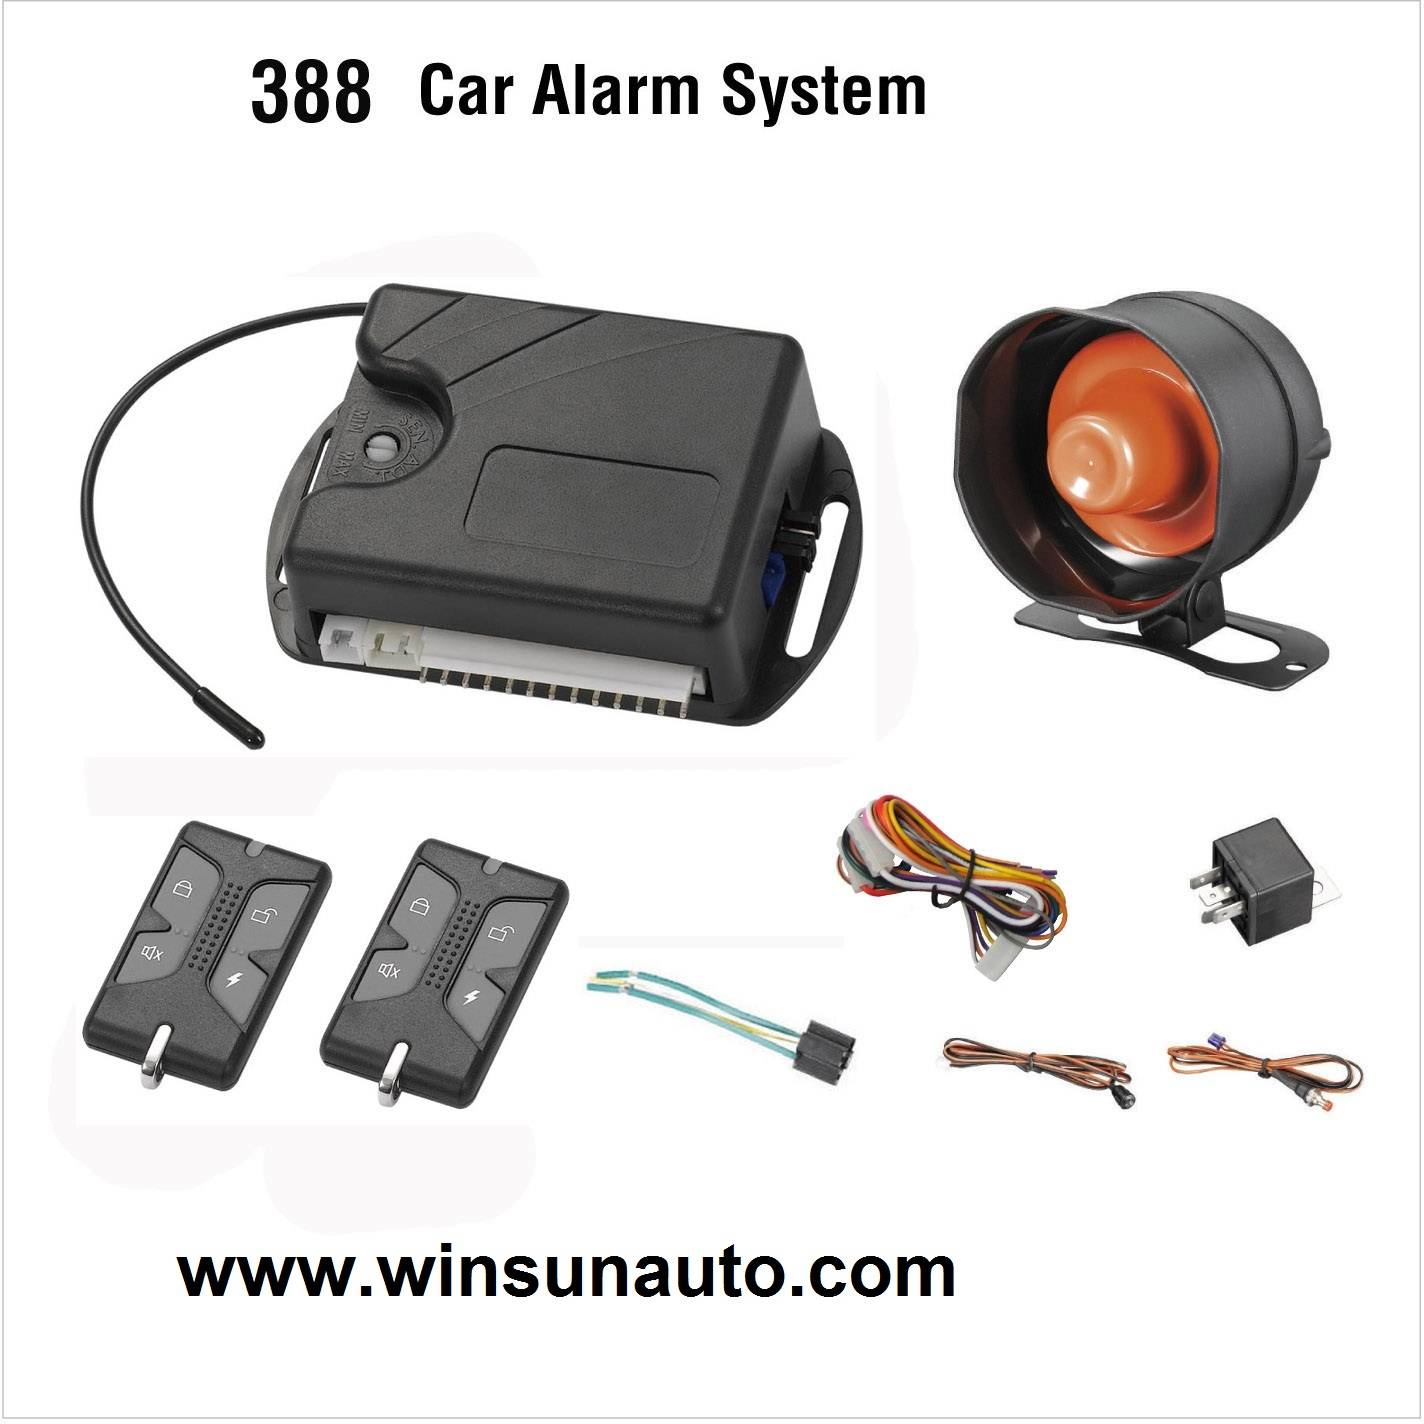 Full function car alarm with lowest price